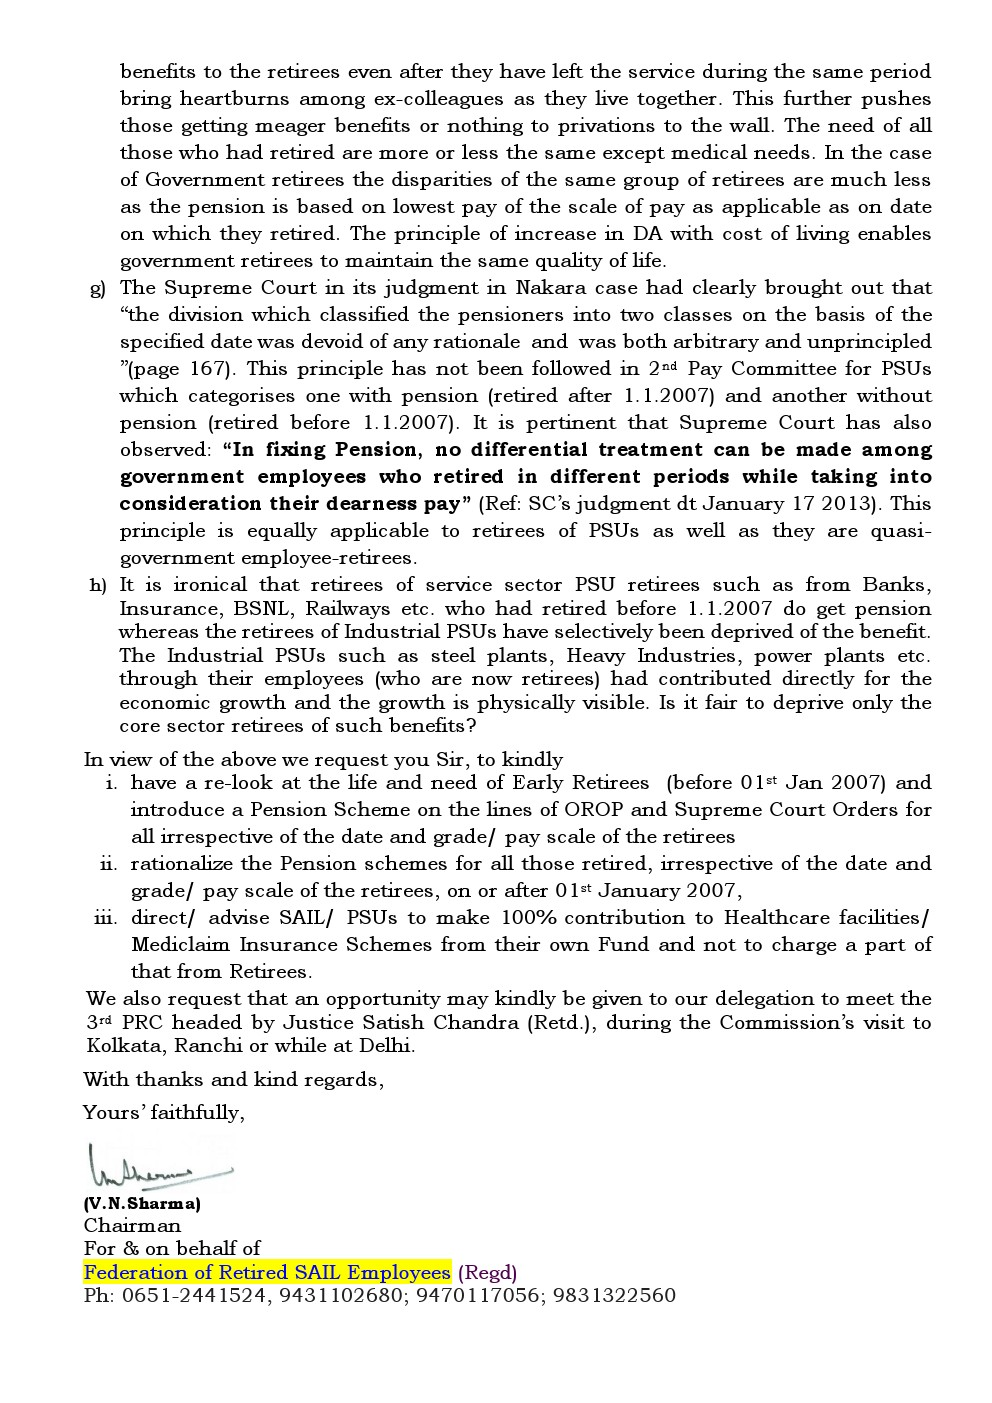 SAIL Ex-Employees Association: Letter to 3rd Pay Revision